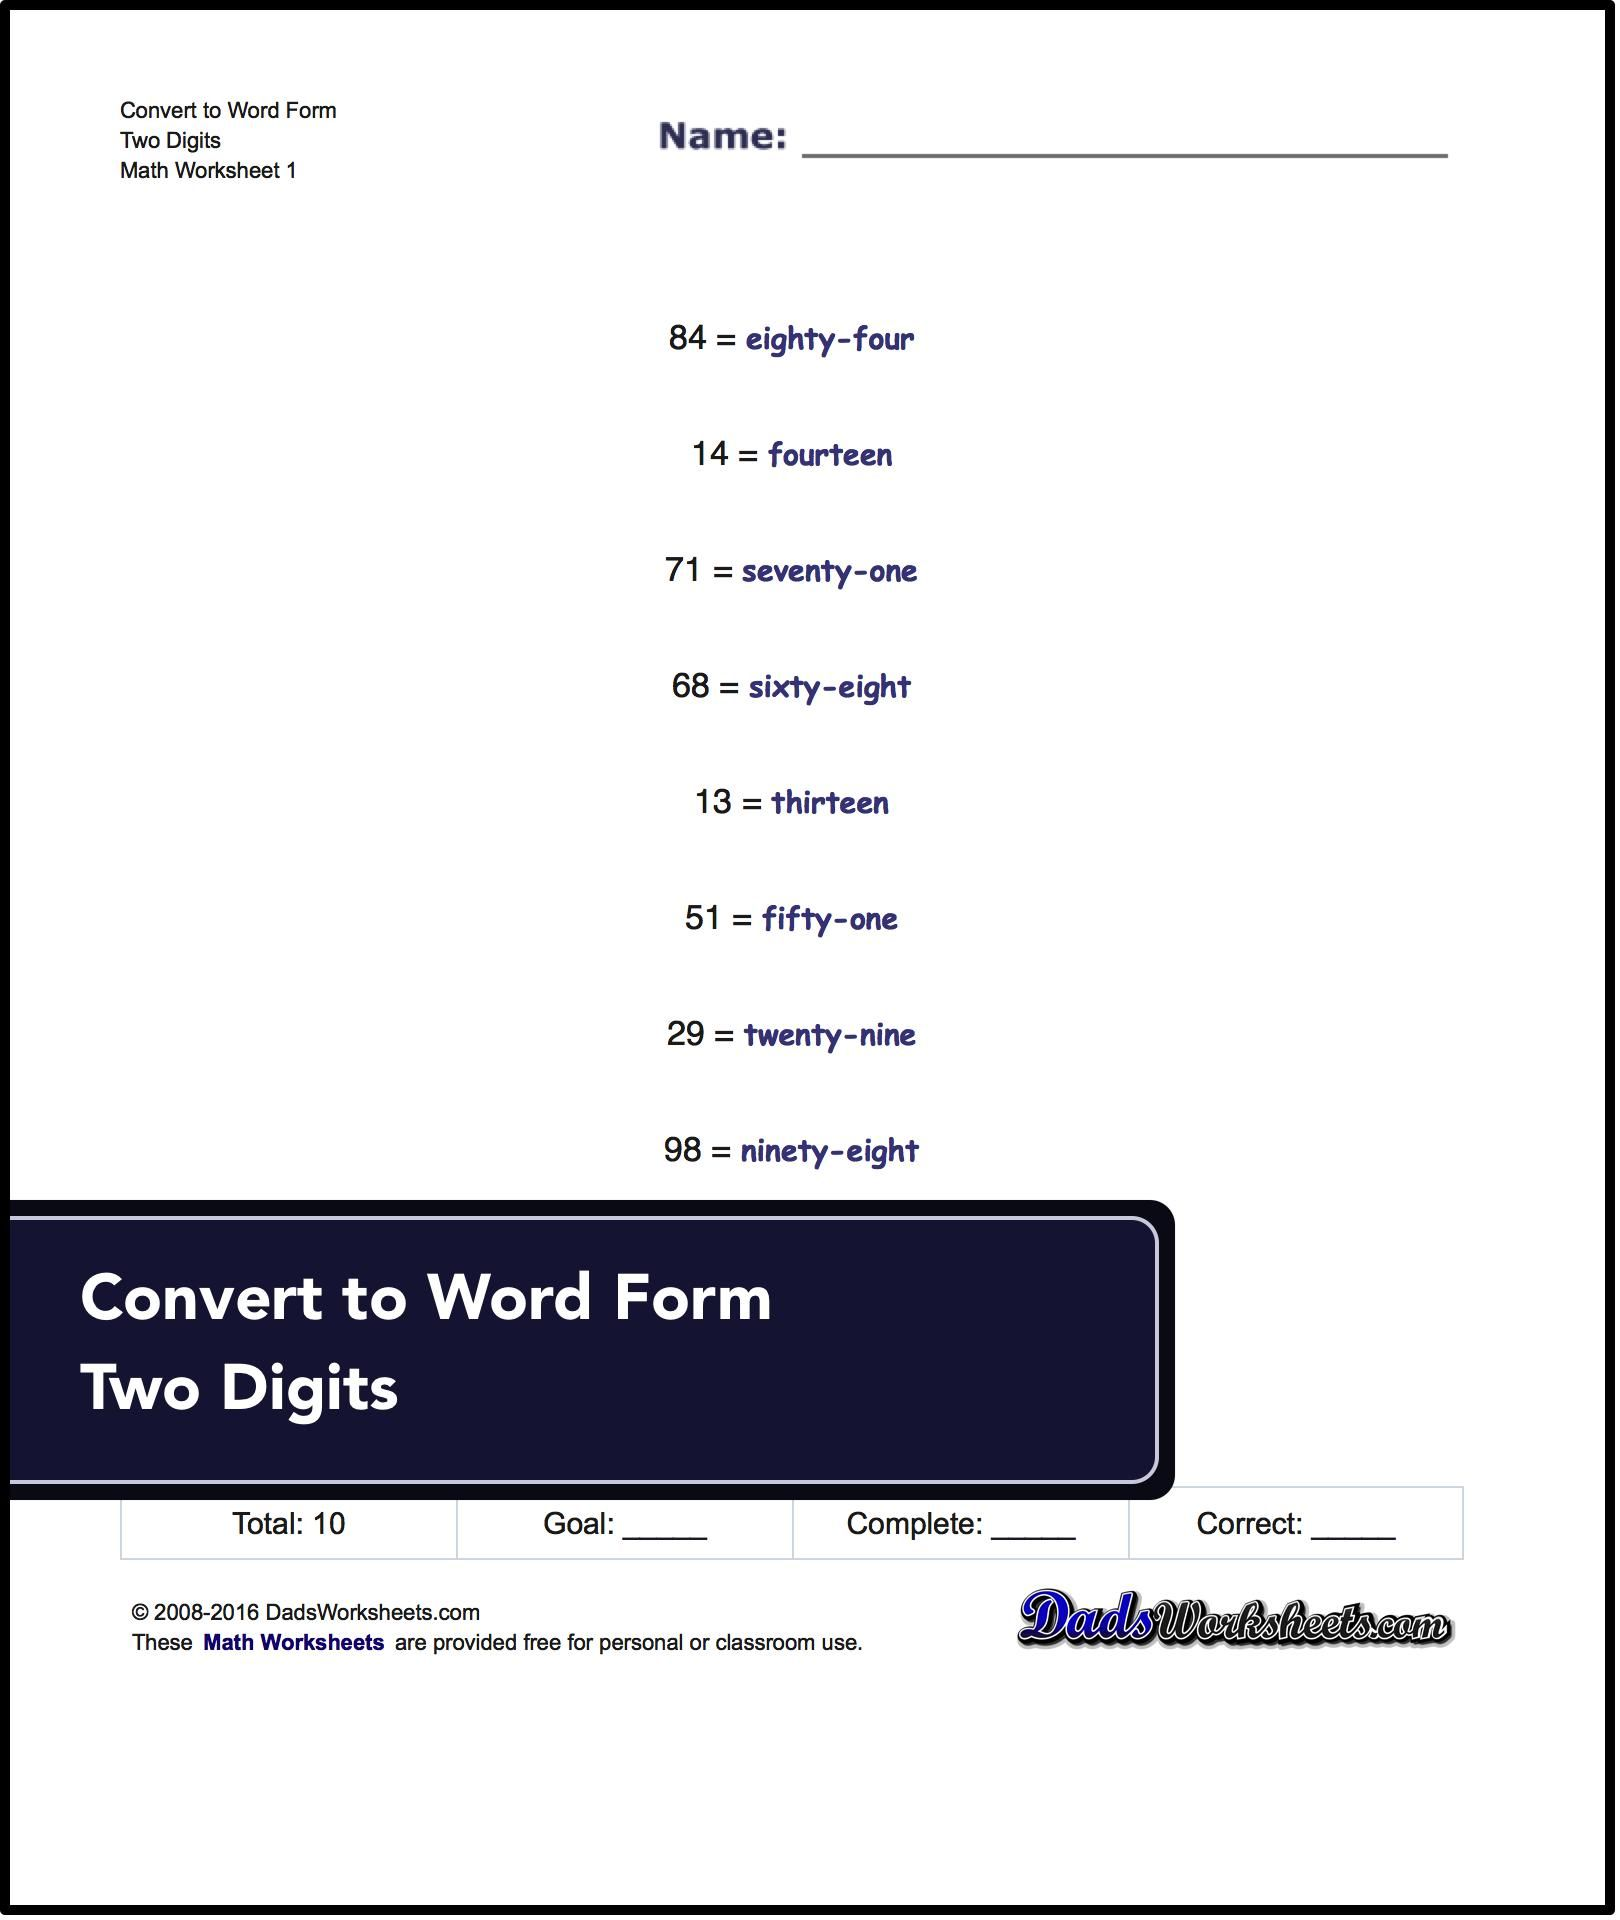 Practice Worksheets For Converting Numbers From Standard